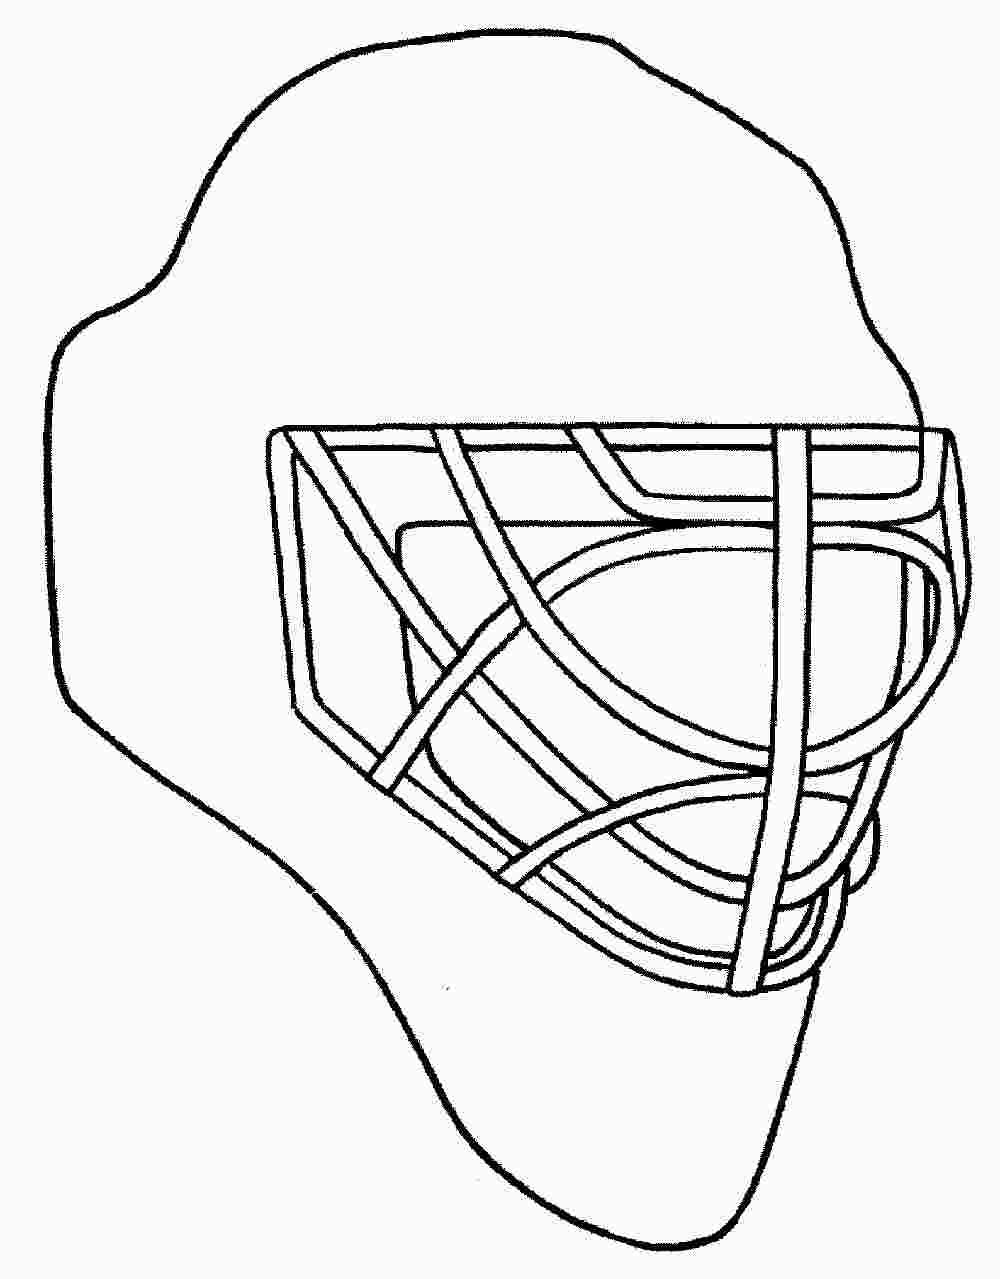 Hockey Goalie Mask Coloring Pages With Images Hockey Goalie